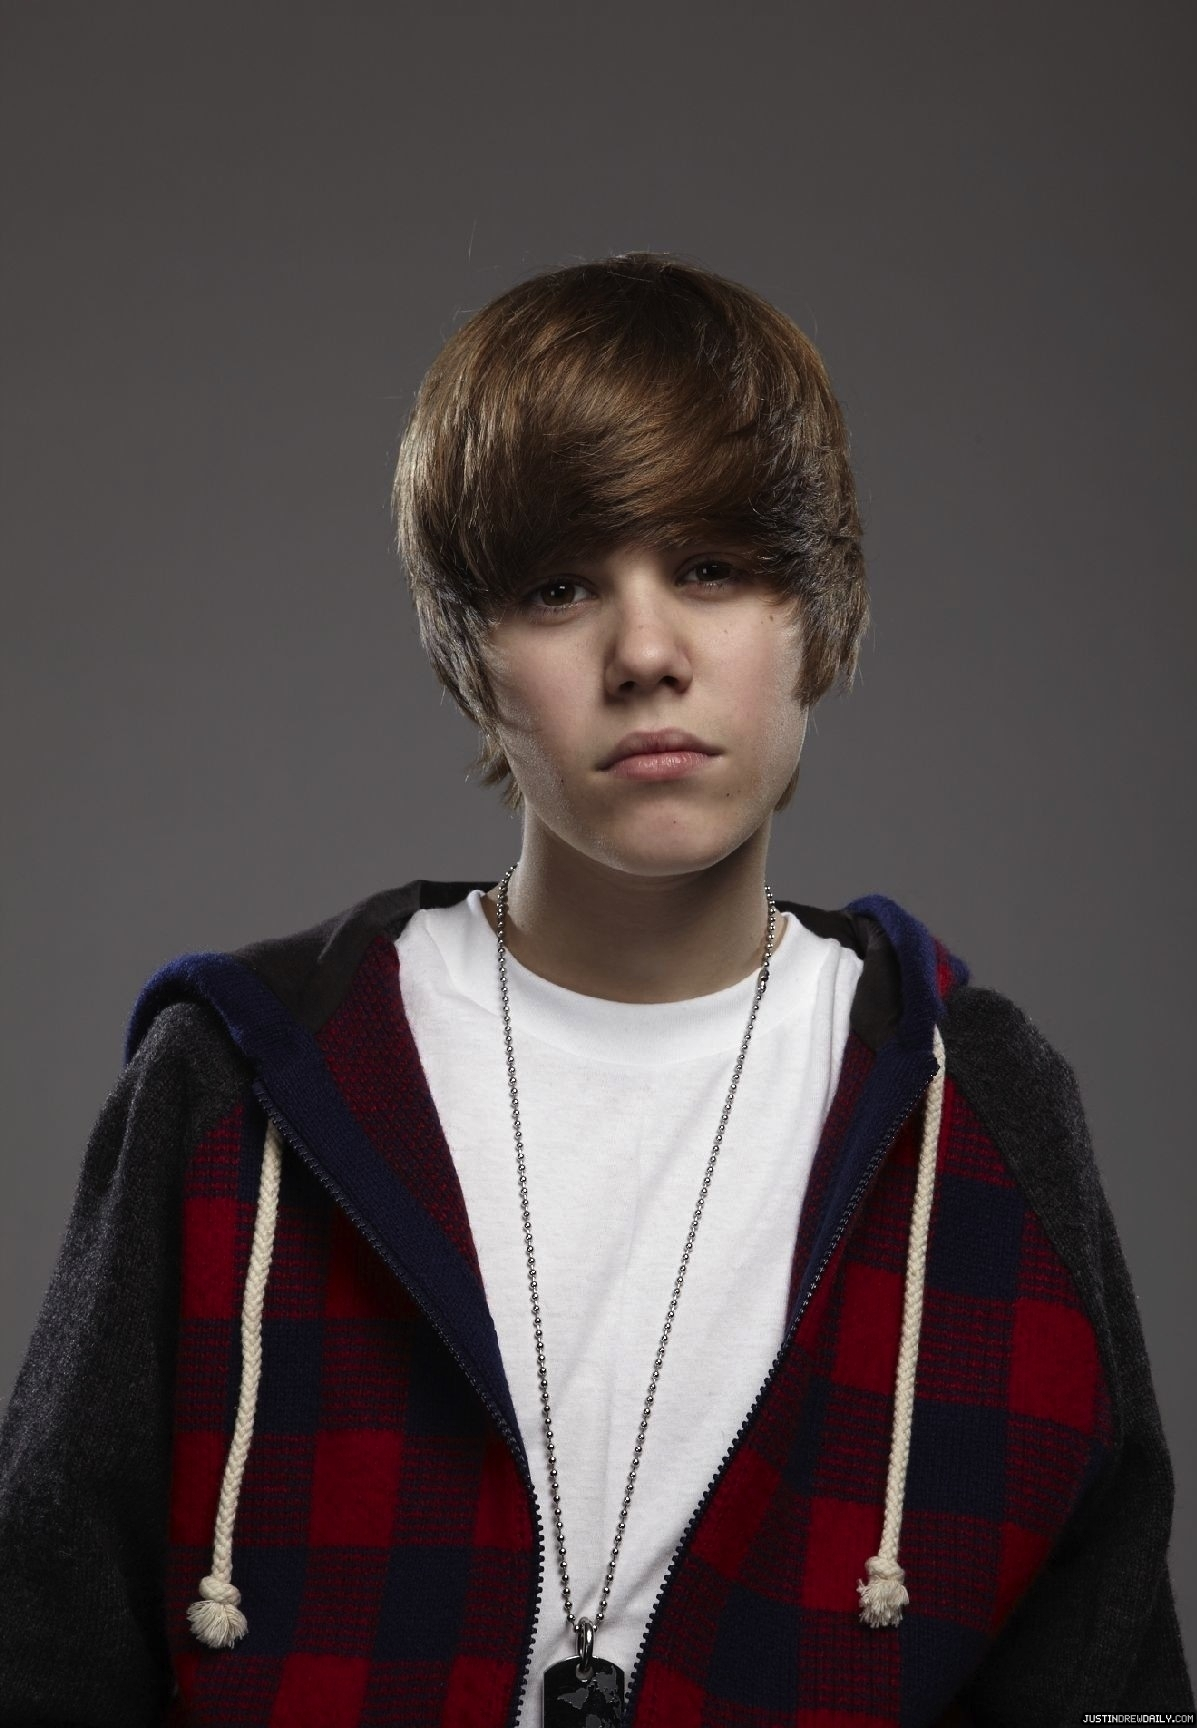 Portraits By Simon Webb - Justin Bieber zoom in (hot face